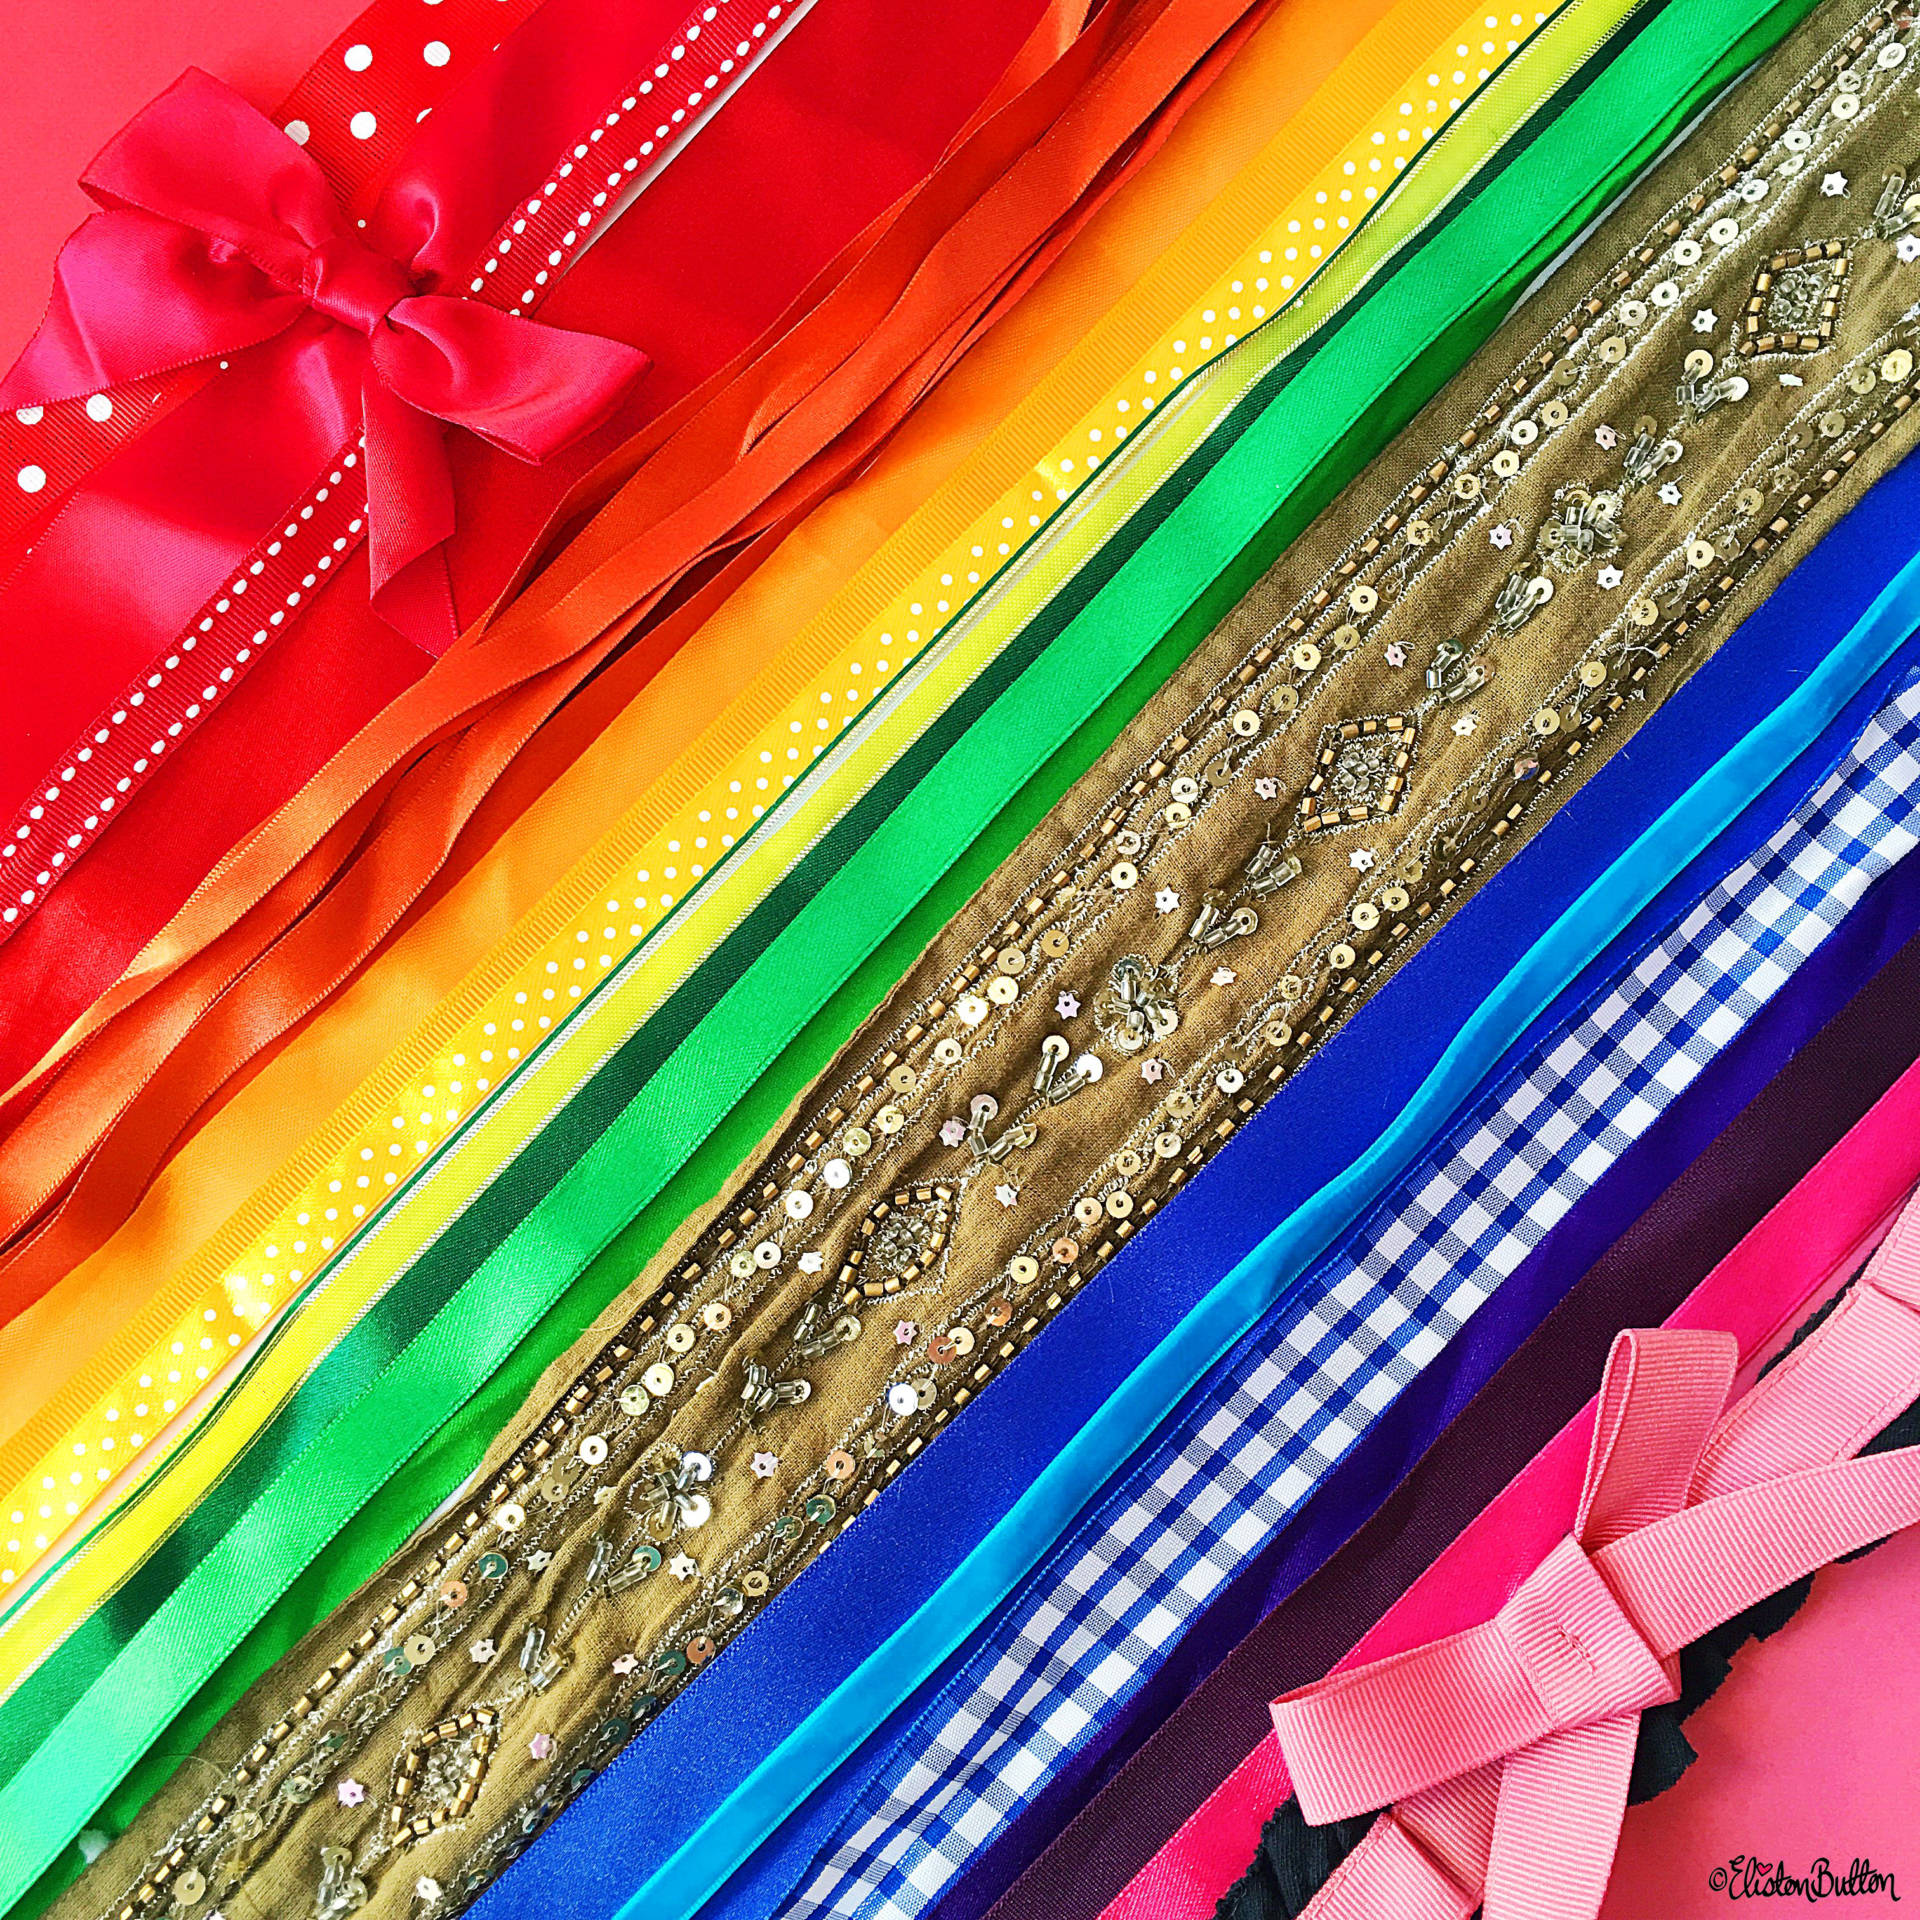 Day 18 - R is For...Ribbons - A Rainbow of Ribbons - Photo-a-Day - July 2016 - Eliston Button A-Z of Craft at www.elistonbutton.com - Eliston Button - That Crafty Kid – Art, Design, Craft & Adventure.